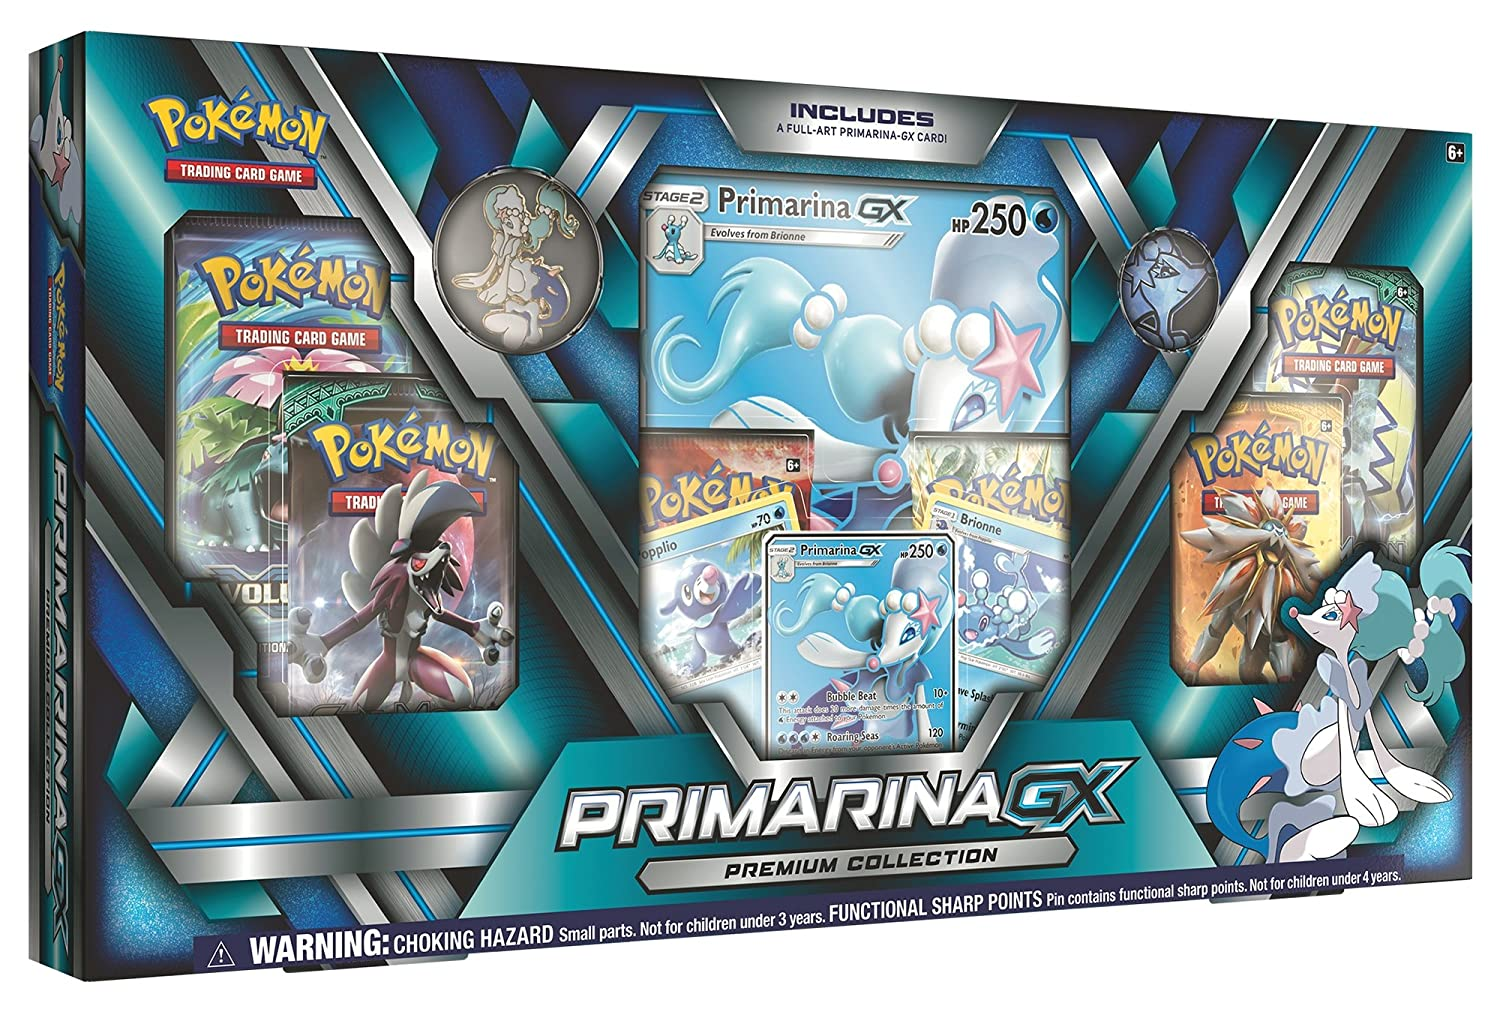 Pokemon TCG: Sun & Moon Guardians Rising, Primarina Premium GX Box Featuring A Specialty Pin